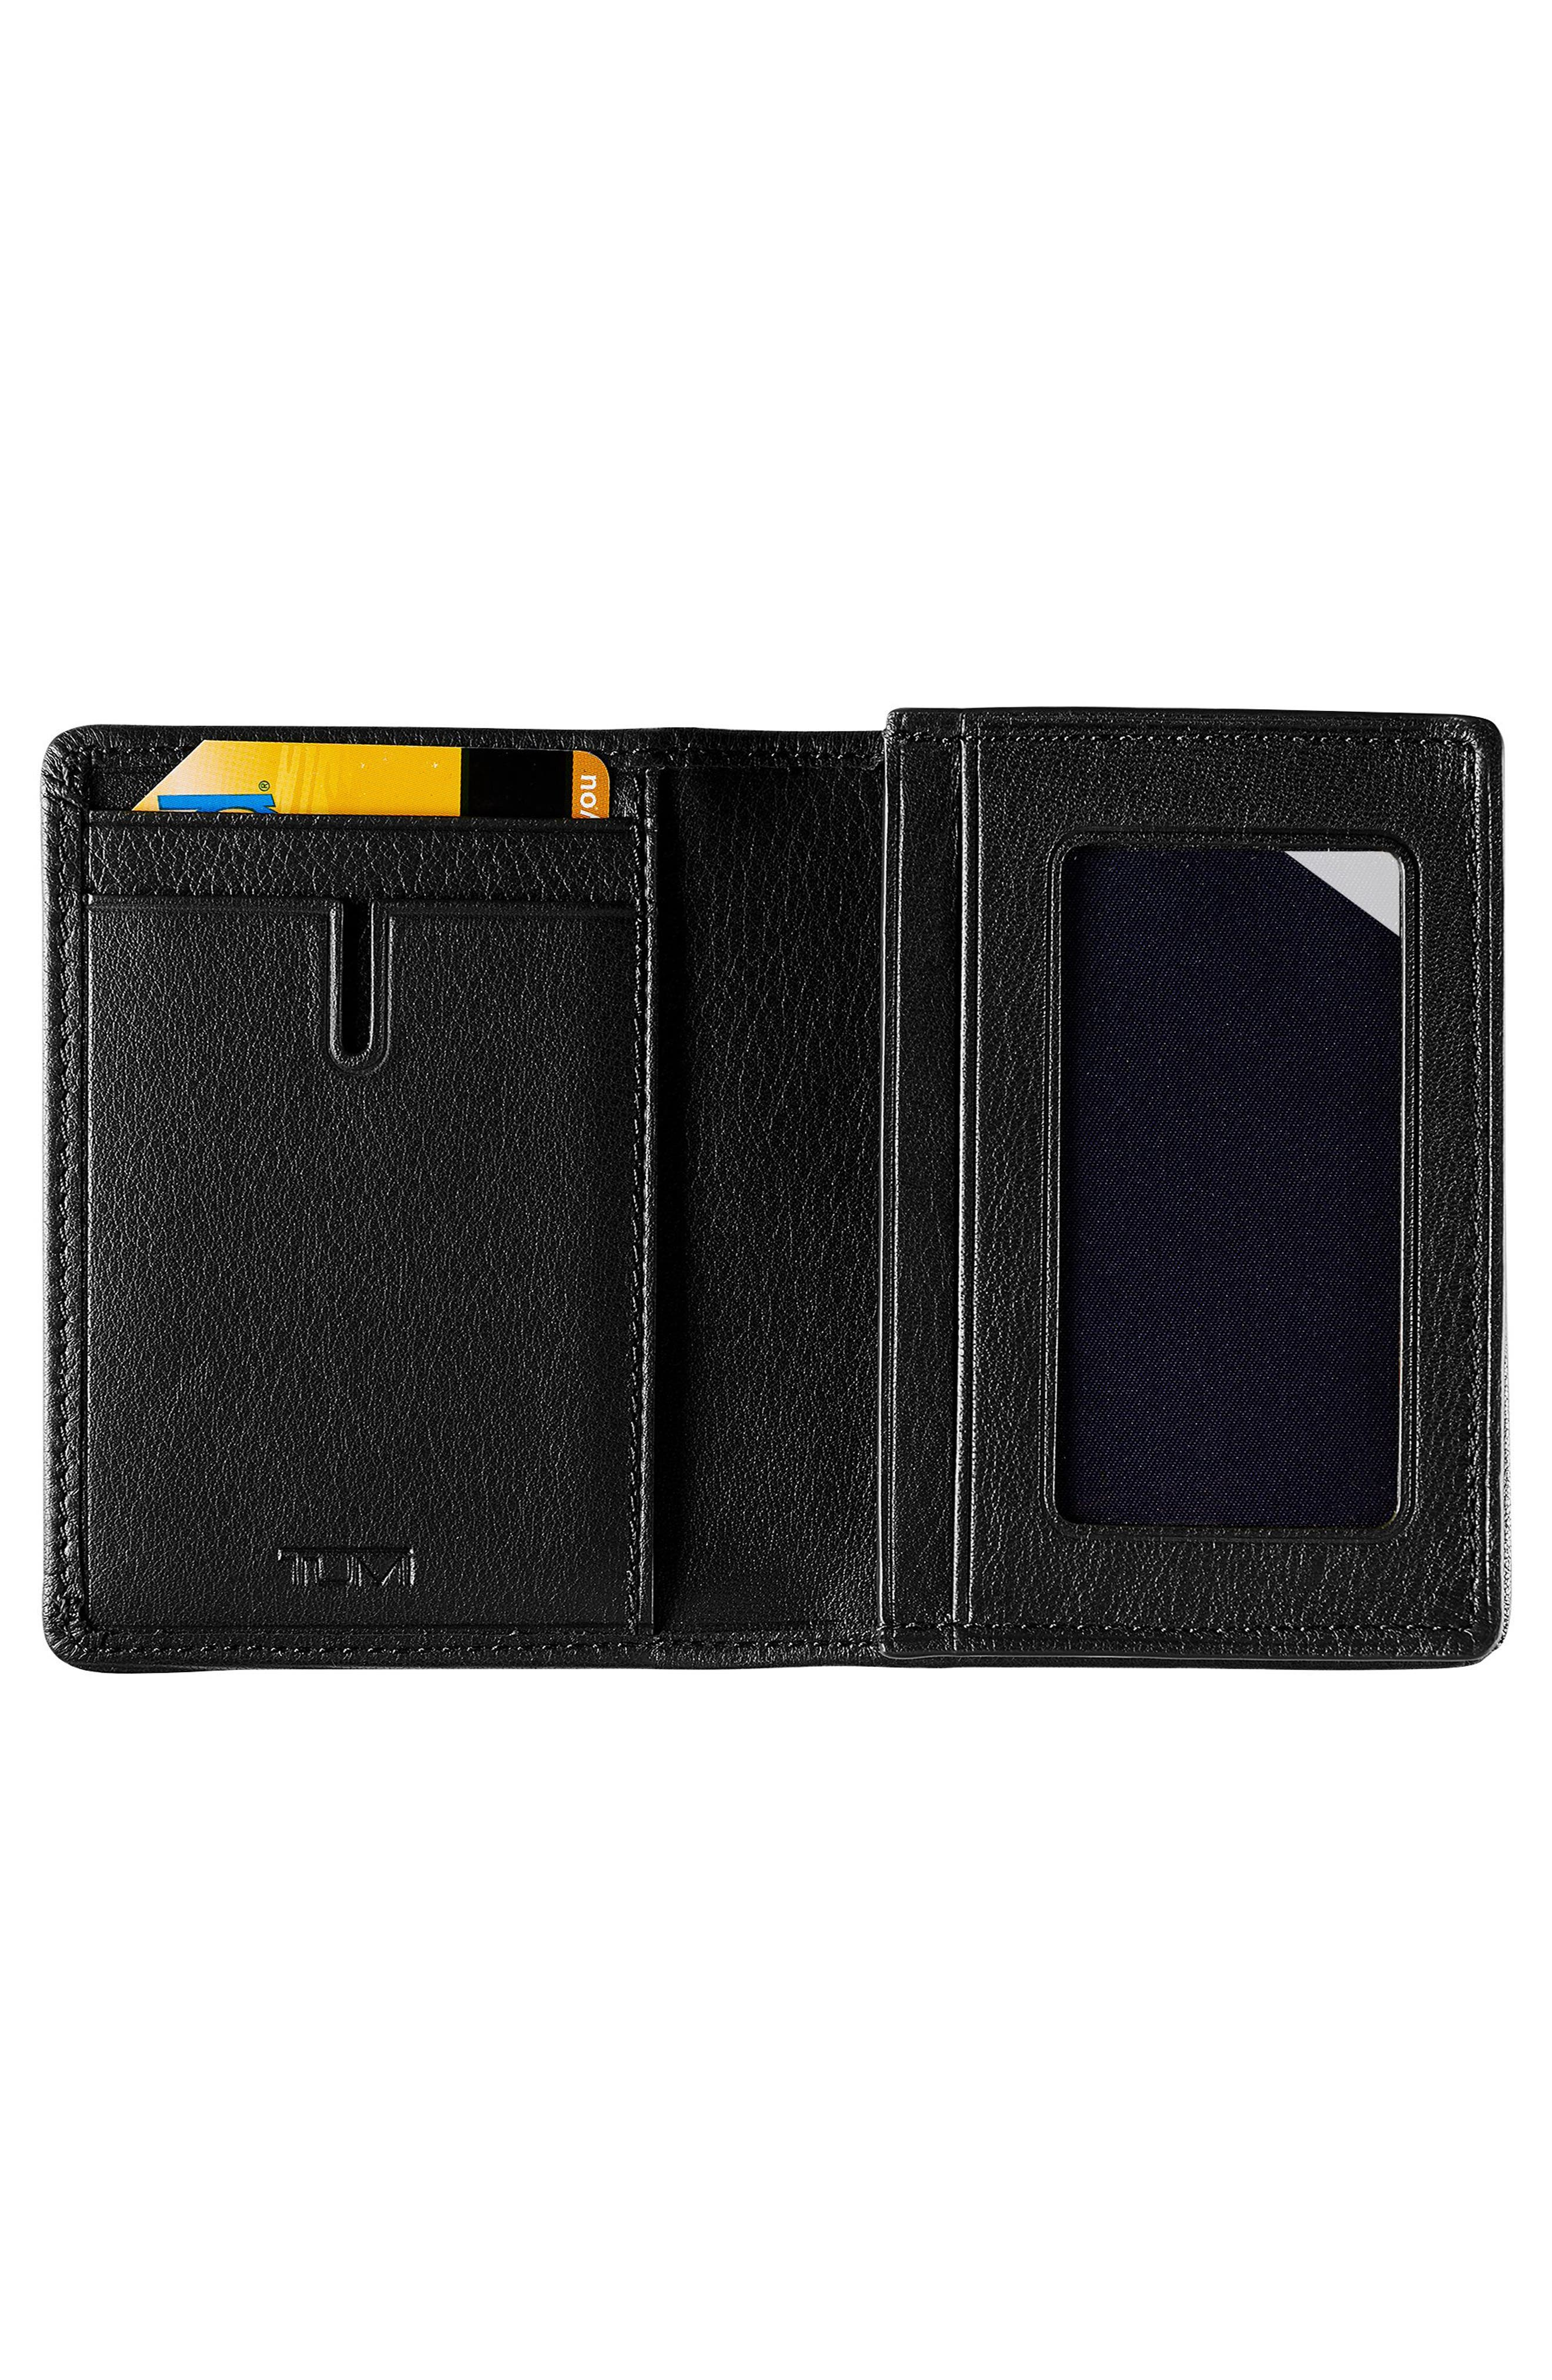 Leather RFID Card Case,                             Alternate thumbnail 2, color,                             BLACK TEXTURED